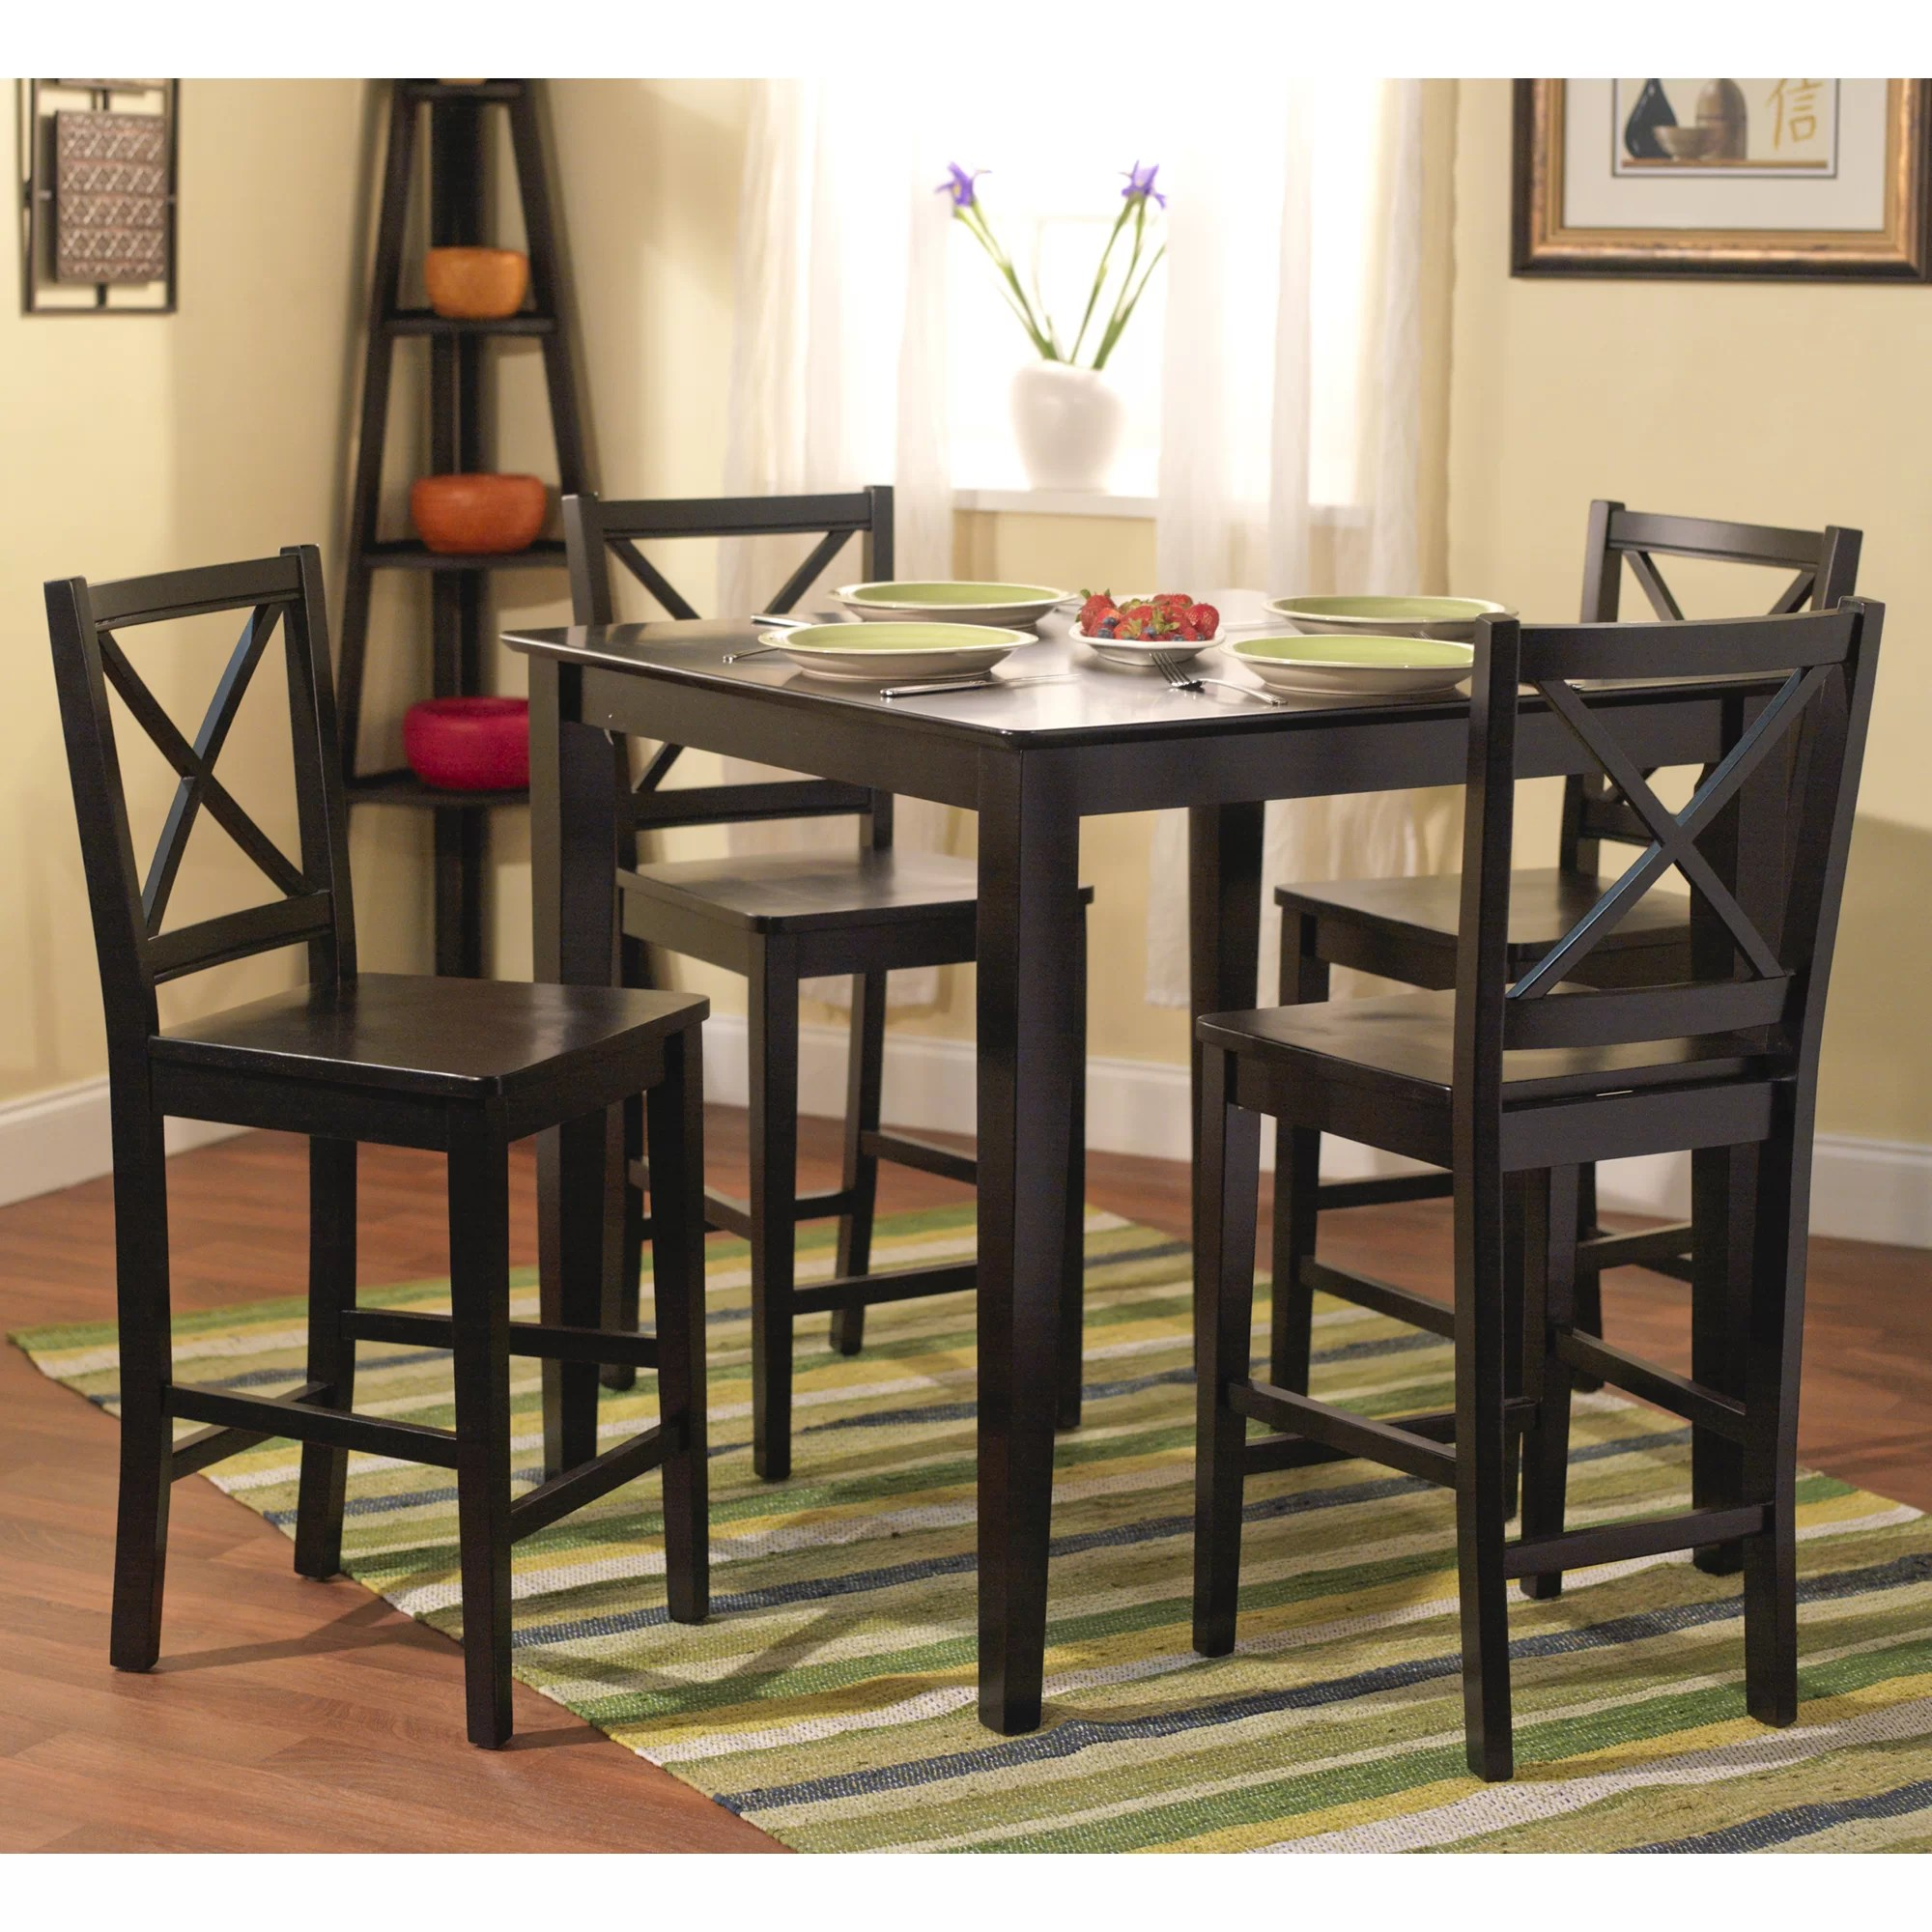 counter height dining sets c counter height kitchen tables Worthington 5 Piece Counter Height Dining Set